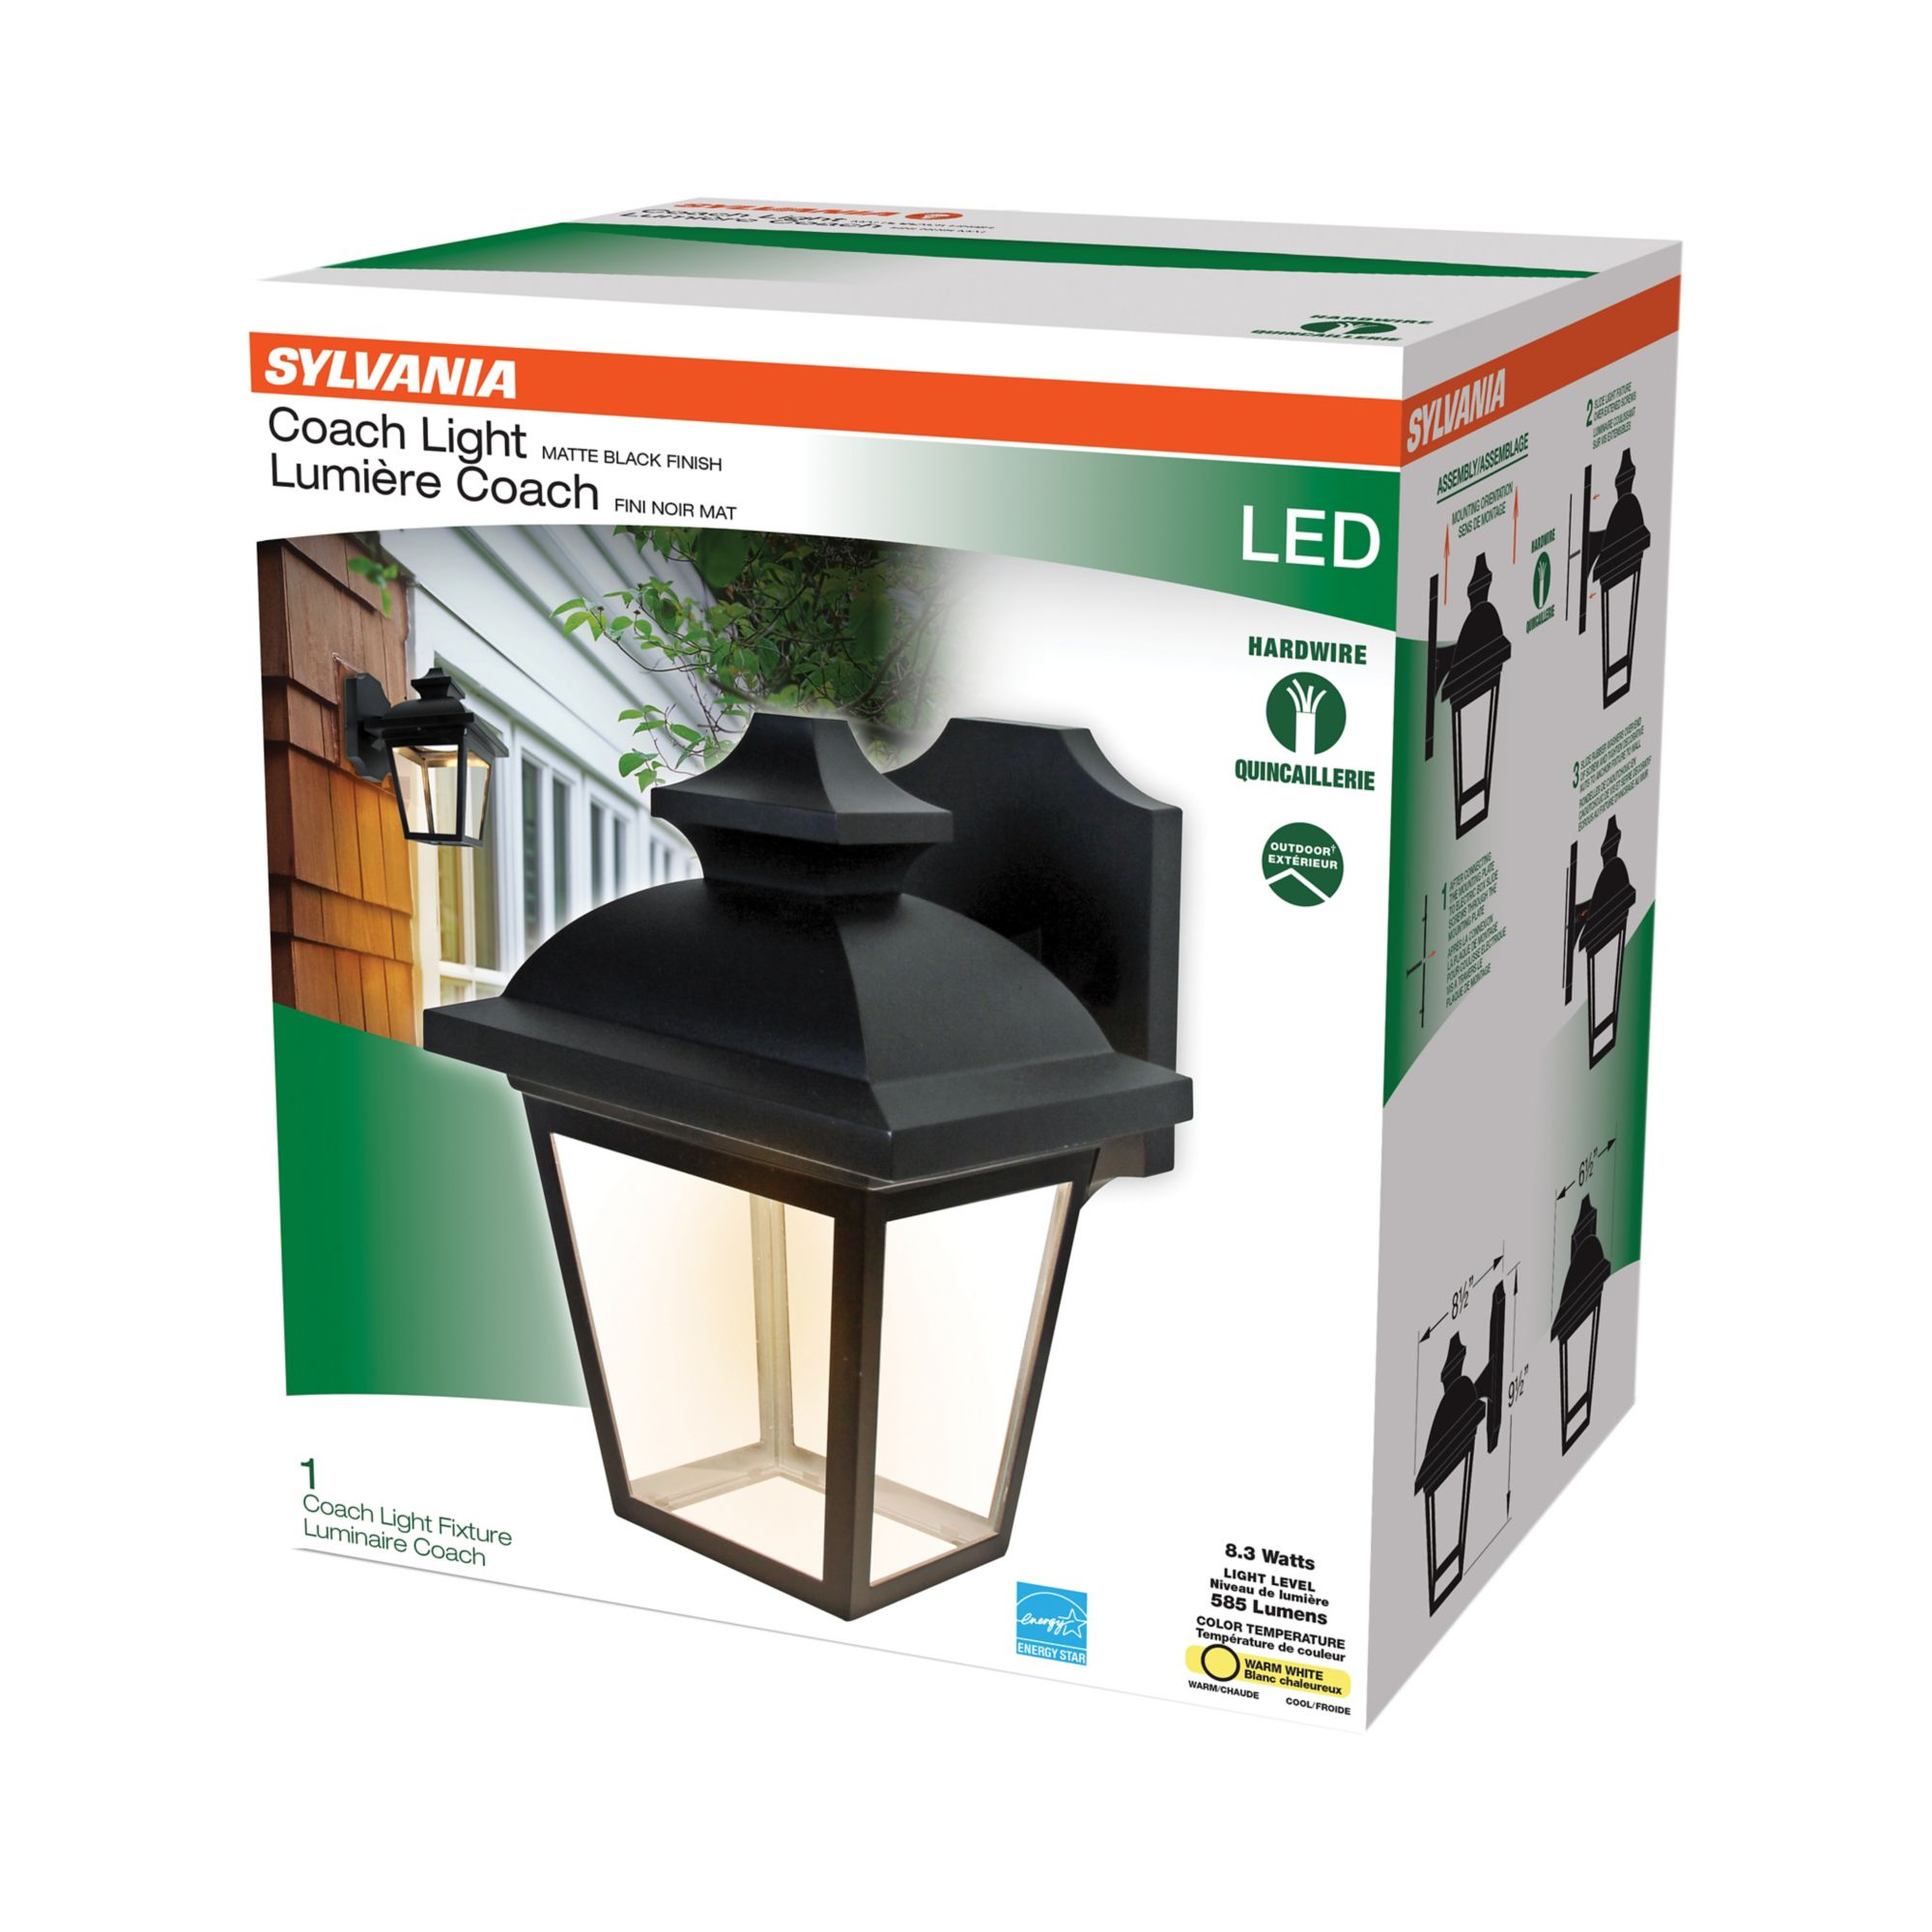 Image of: Sylvania Integrated Led Outdoor Coach Light Fixture Bjs Wholesale Club